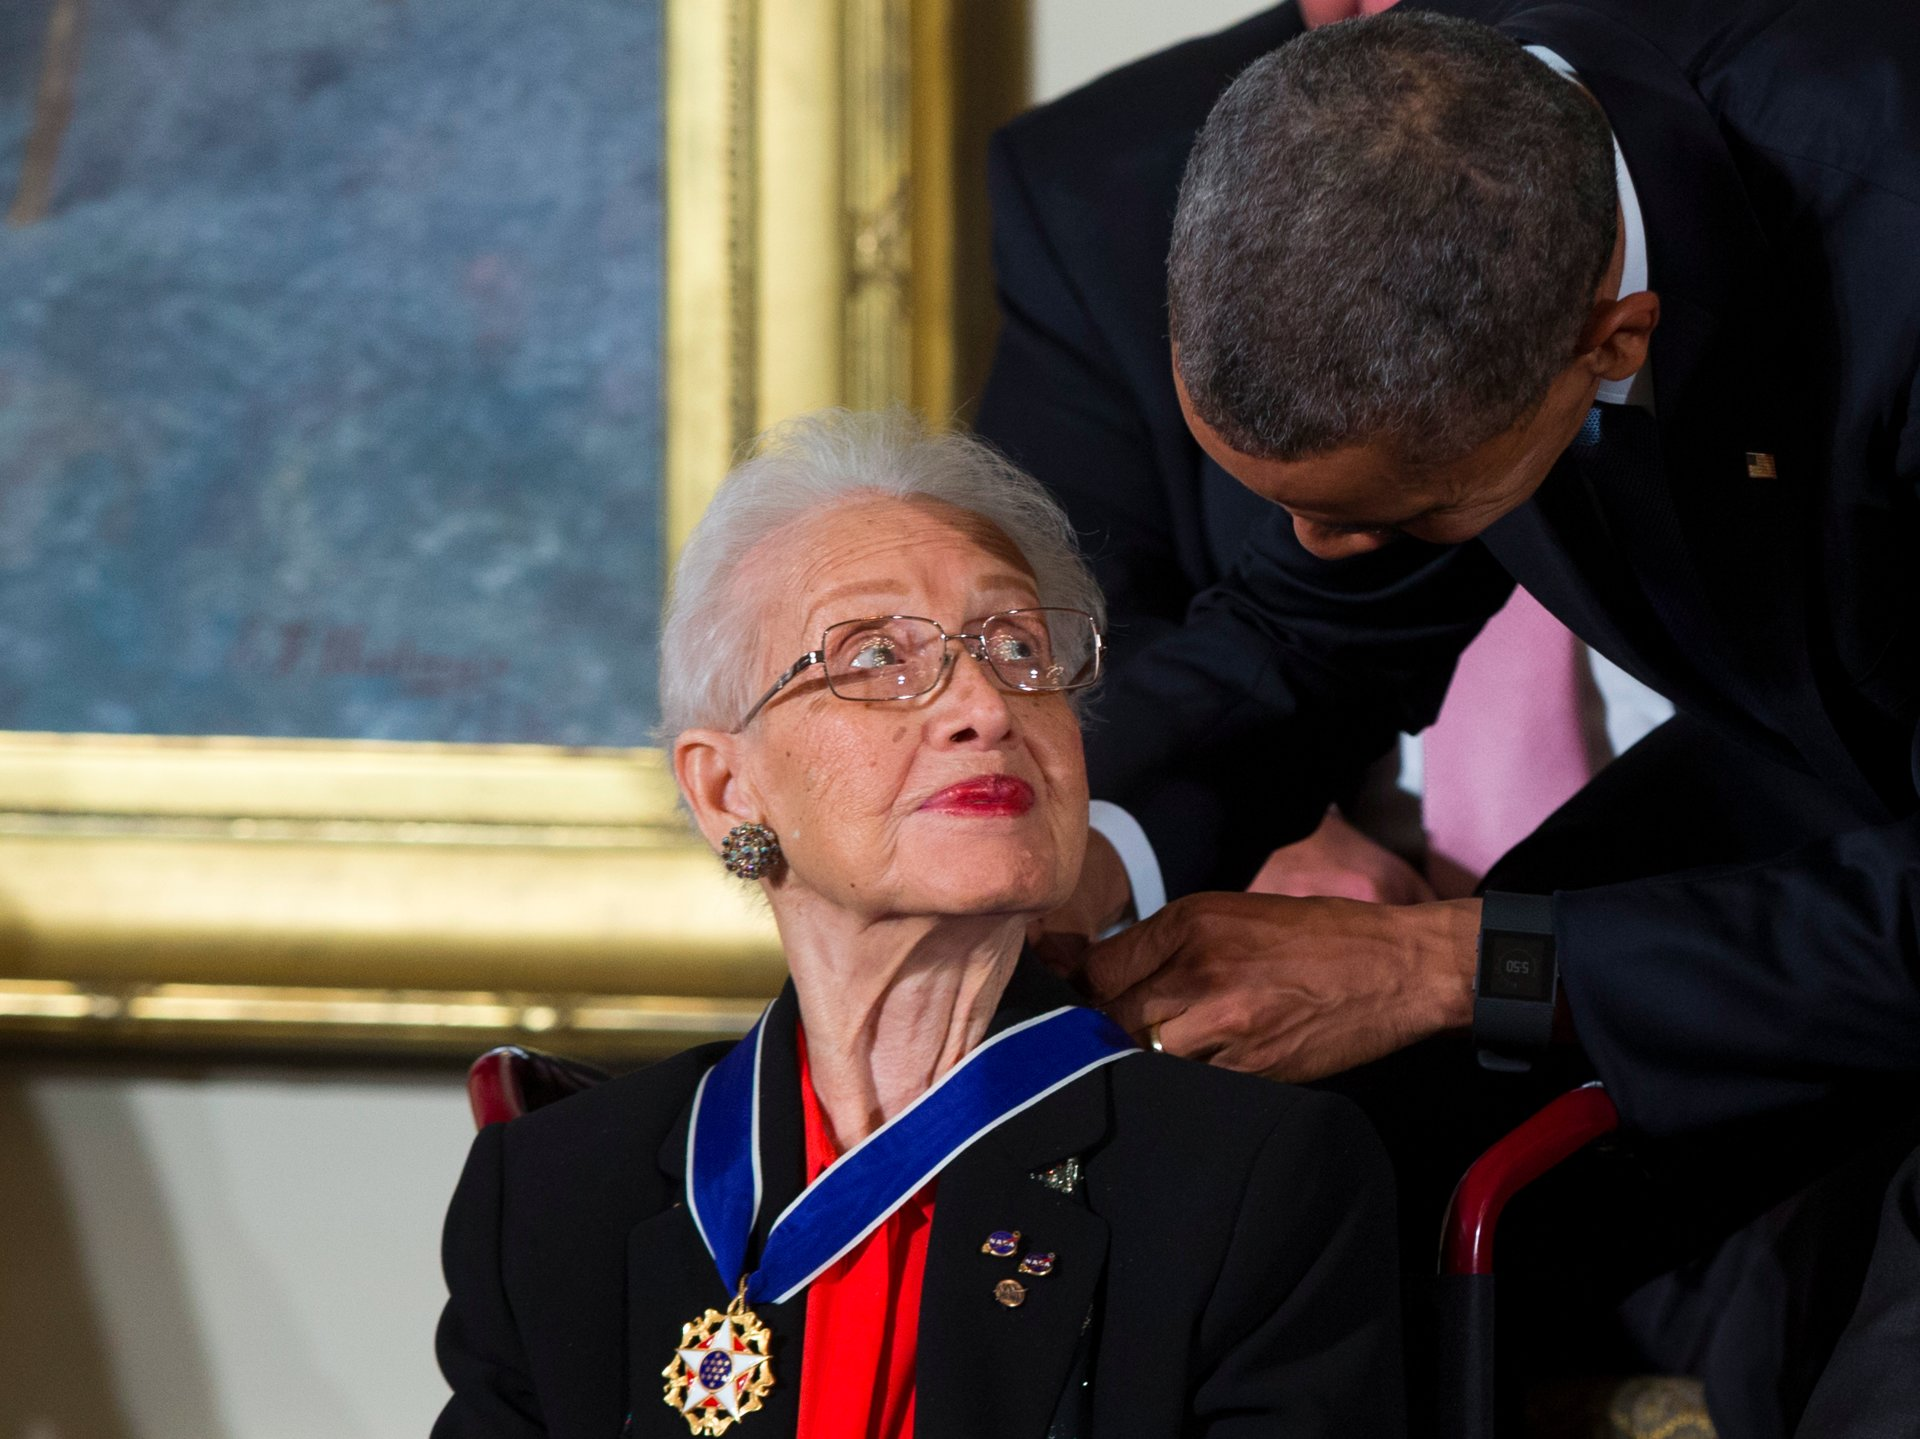 Last year, President Obama gave Johnson the Presidential Medal of Freedom, the most prestigious honor available to civilians. Credit:Evan Vucci/AP